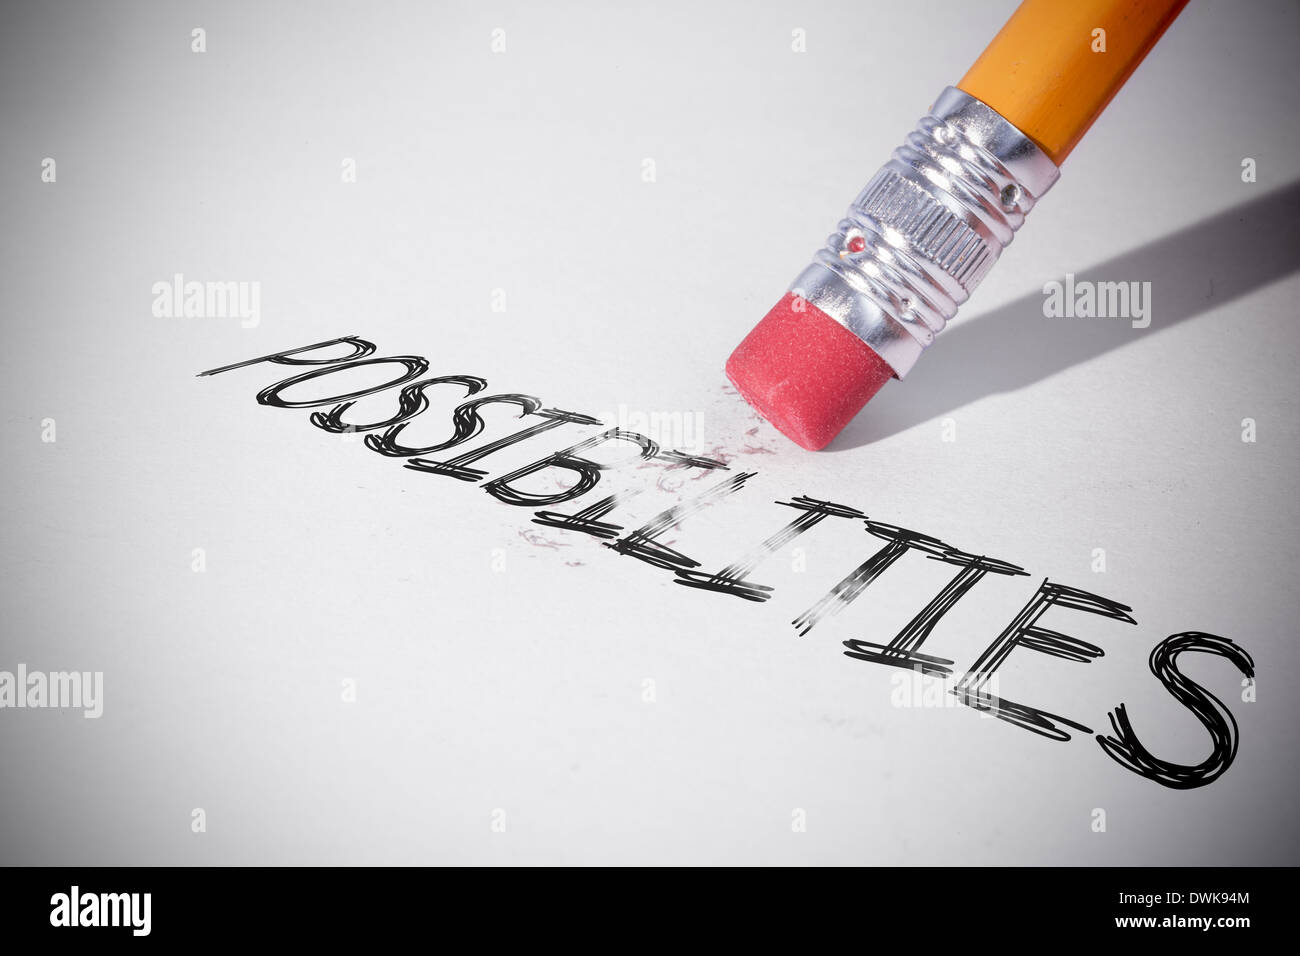 Pencil erasing the word Possibilities - Stock Image